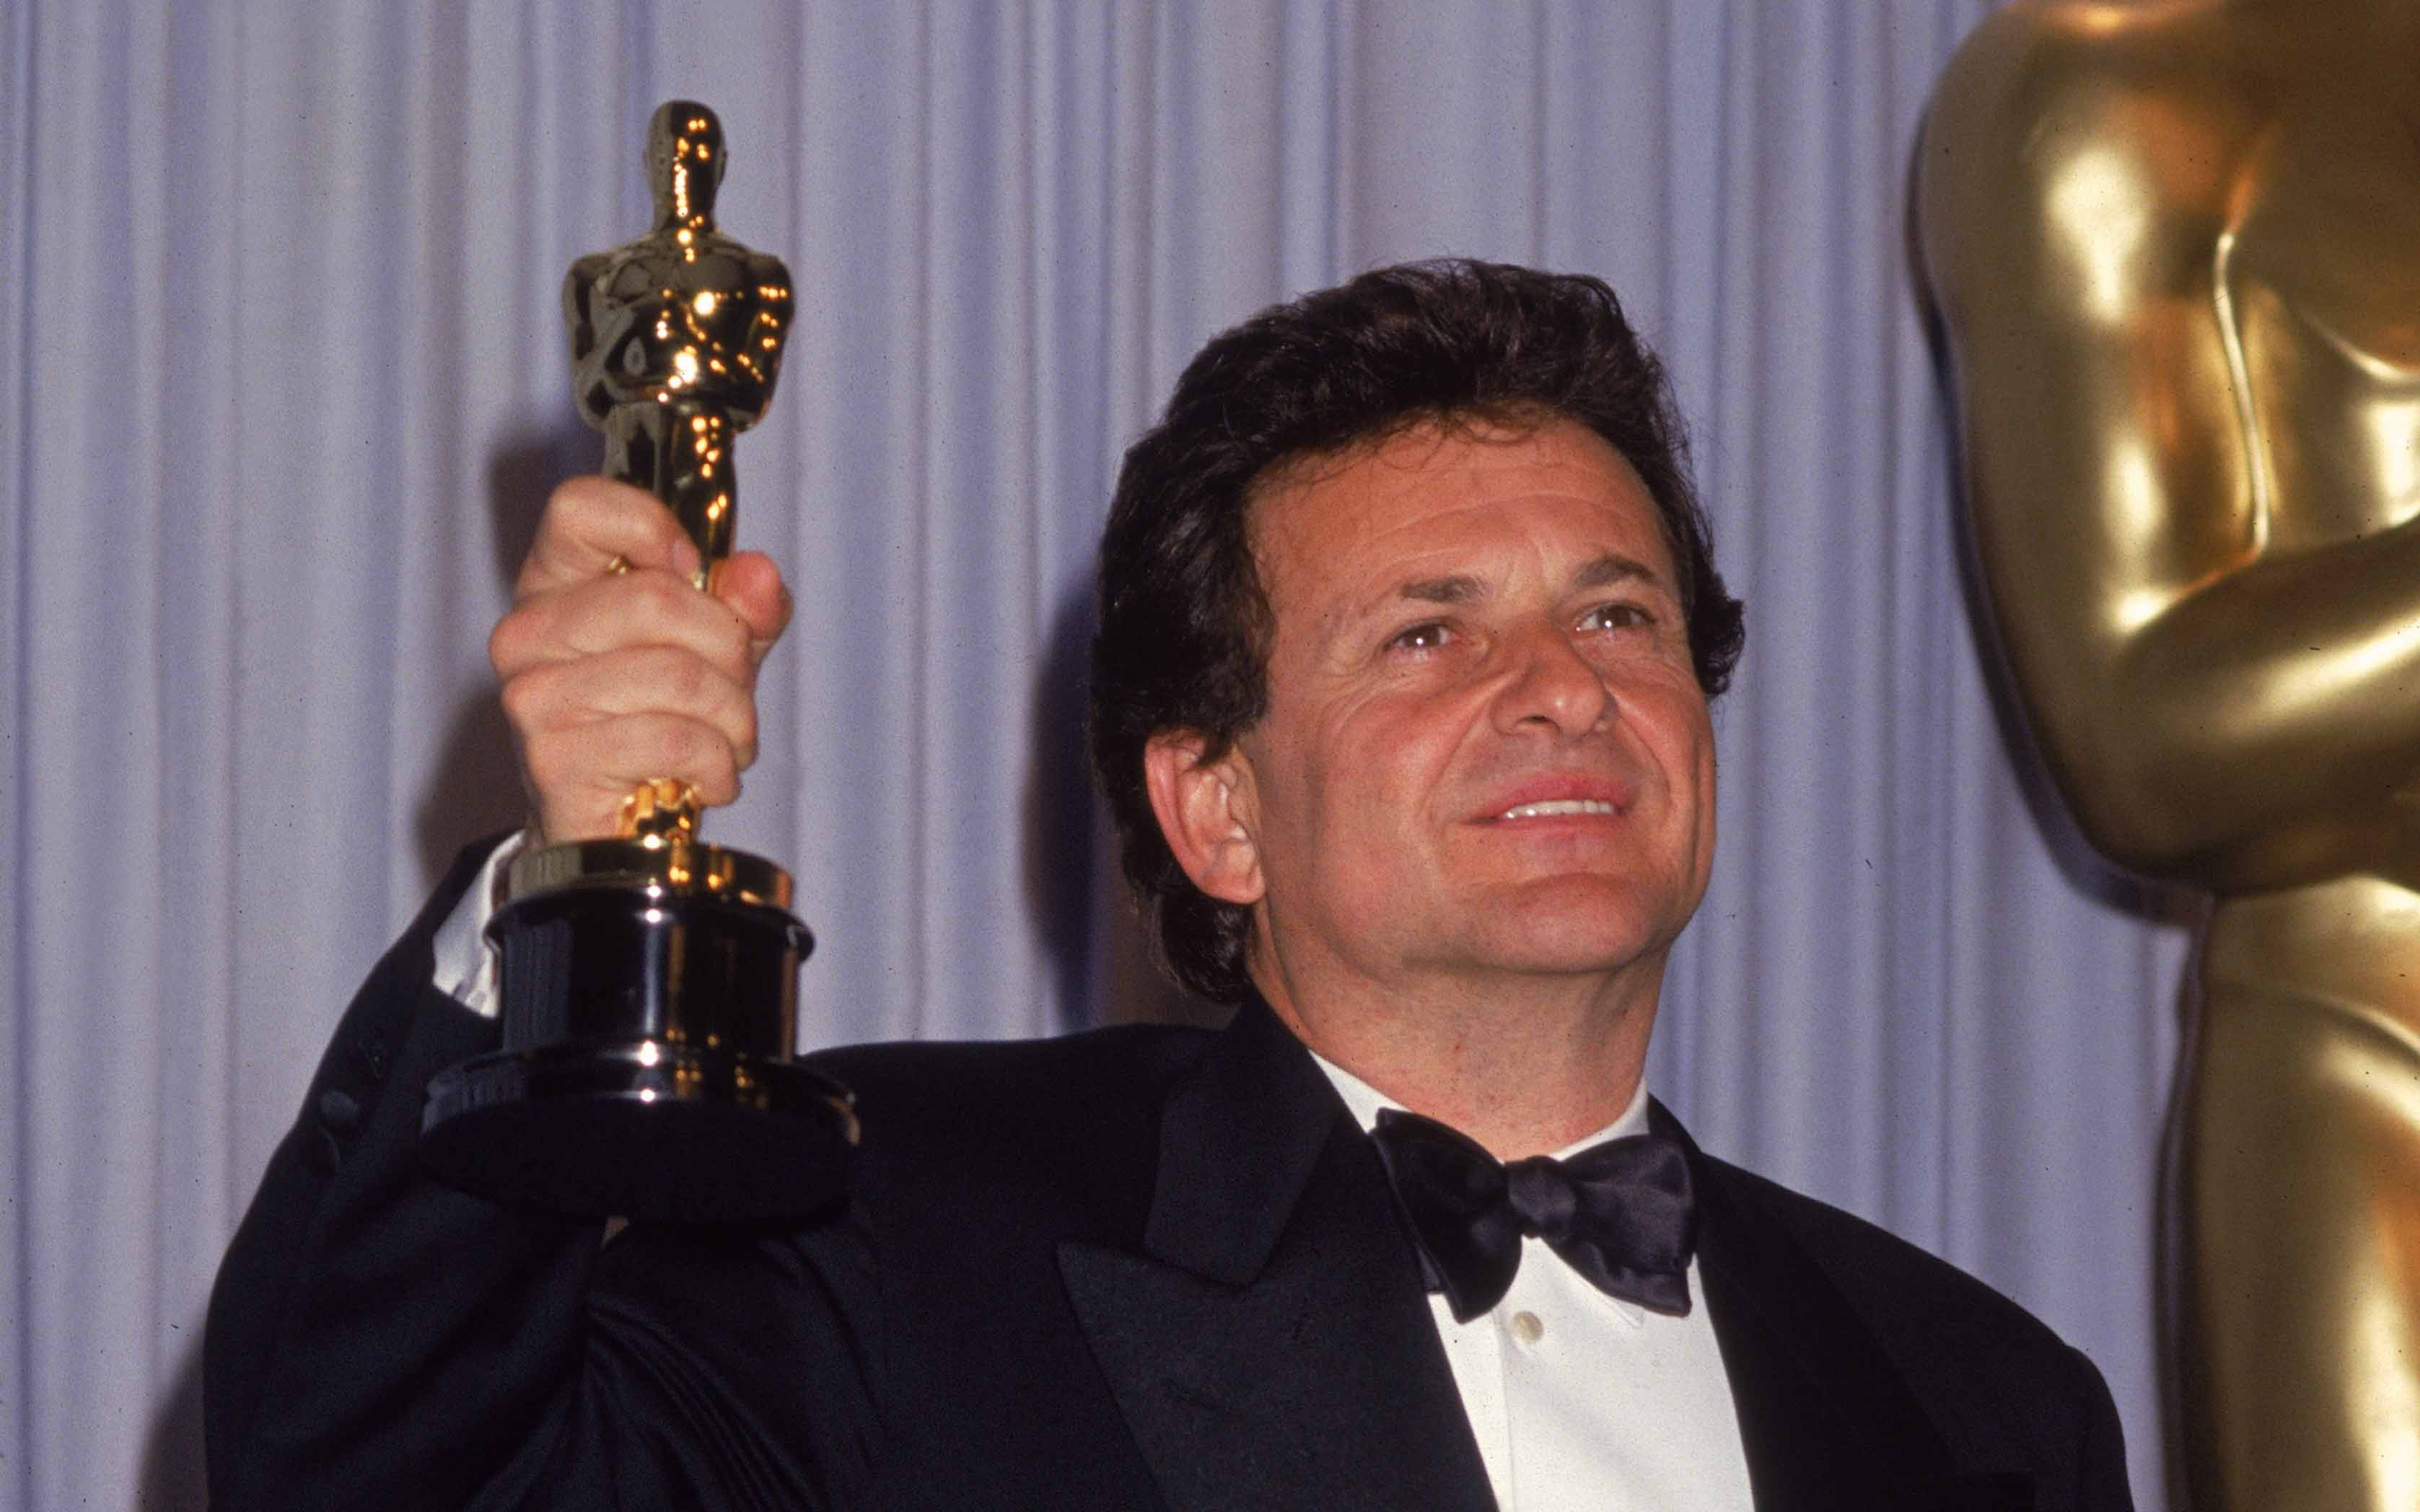 American actor Joe Pesci smiles as he holds up his Oscar for Best Supporting Actor for his role in 'Goodfellas.' Image: Hulton Archive/Getty Images